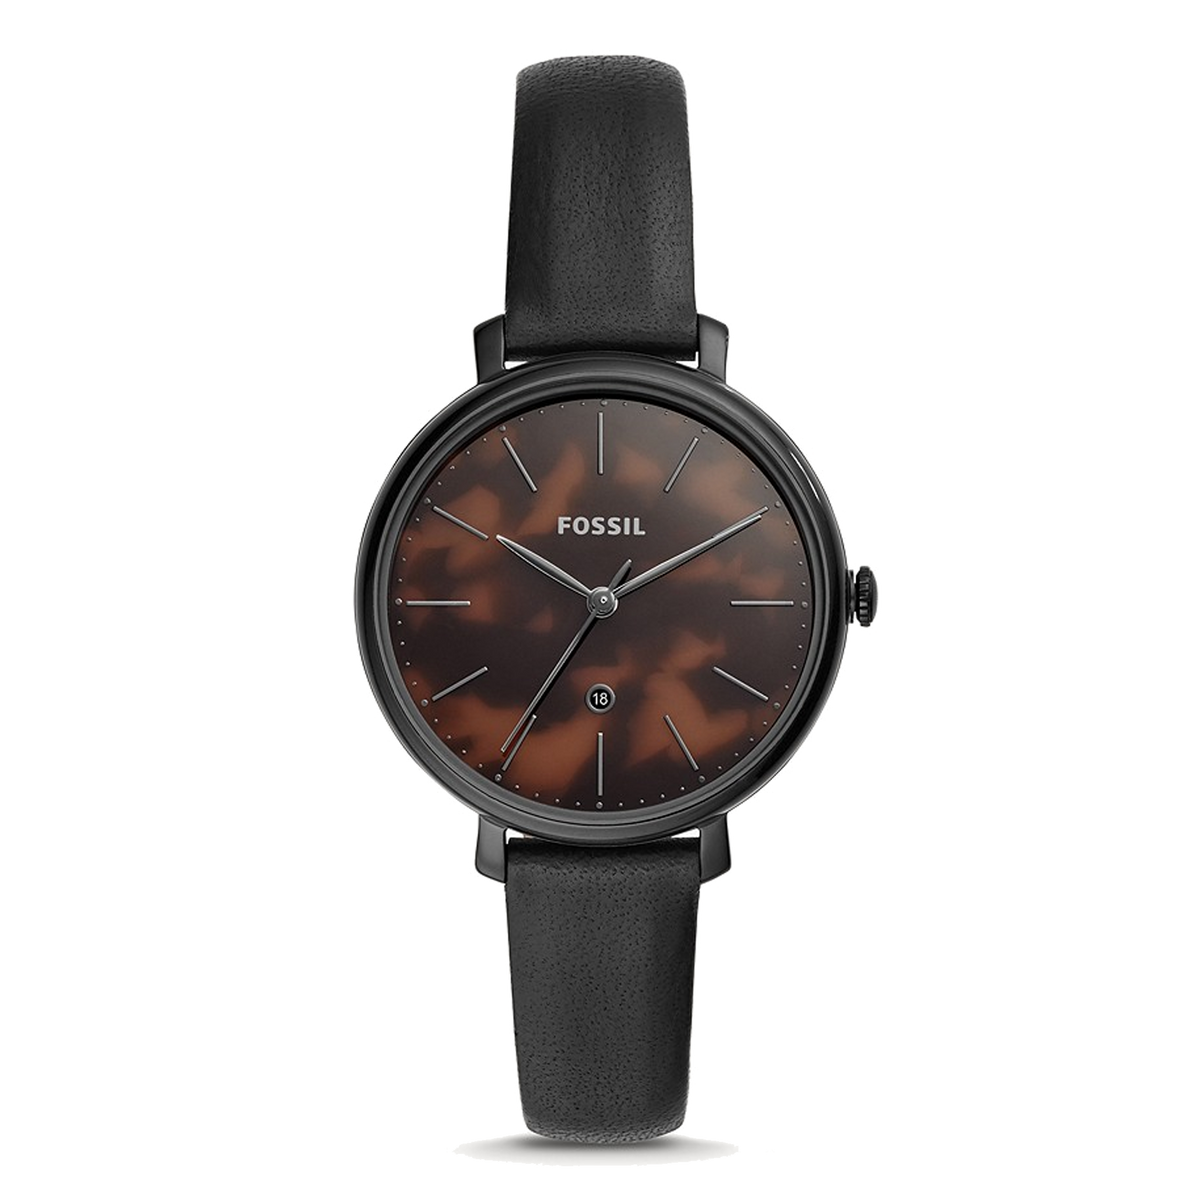 Fossil Watch Jacqueline - Black Steel